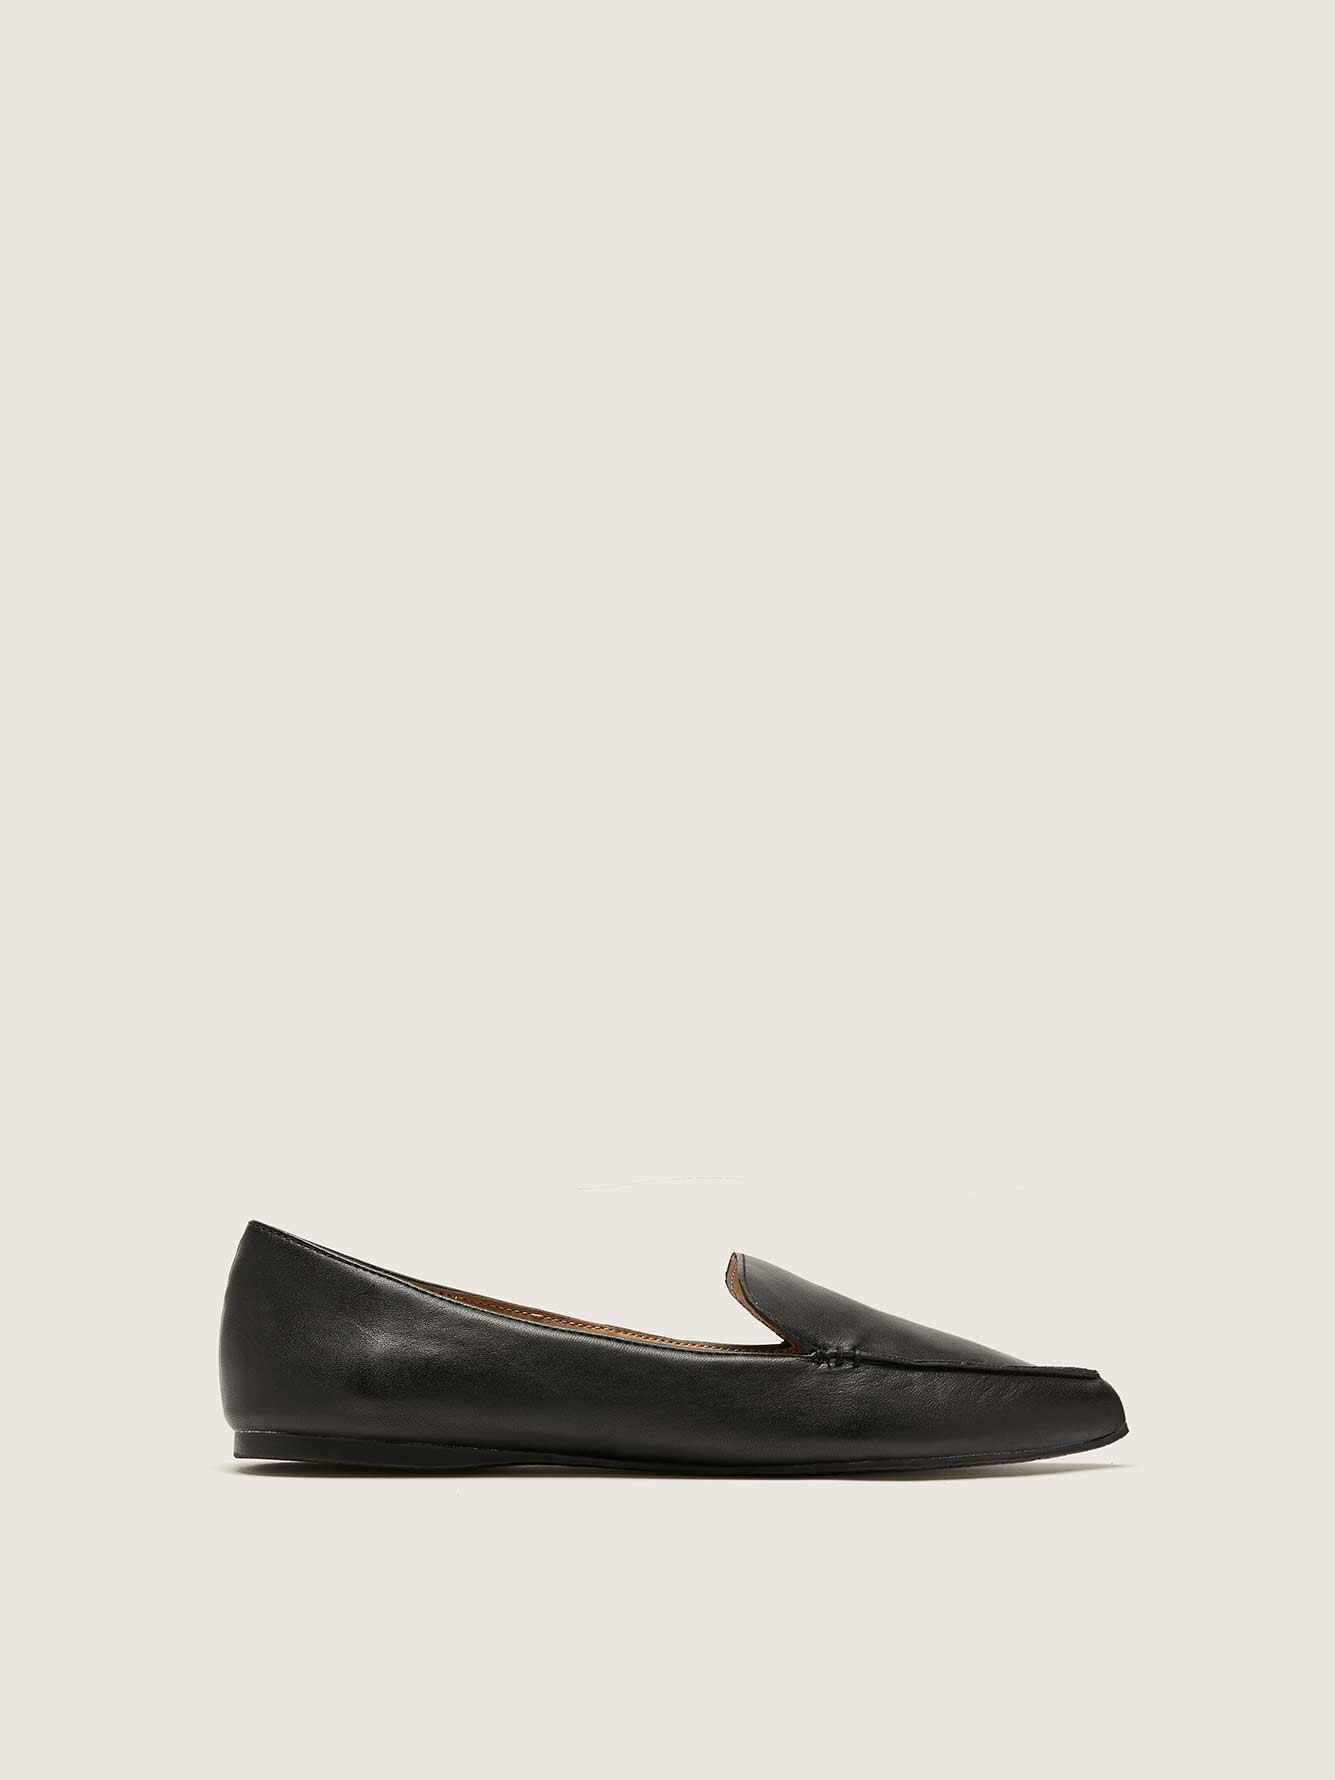 Pointed Toe Leather Loafer - Steve Madden